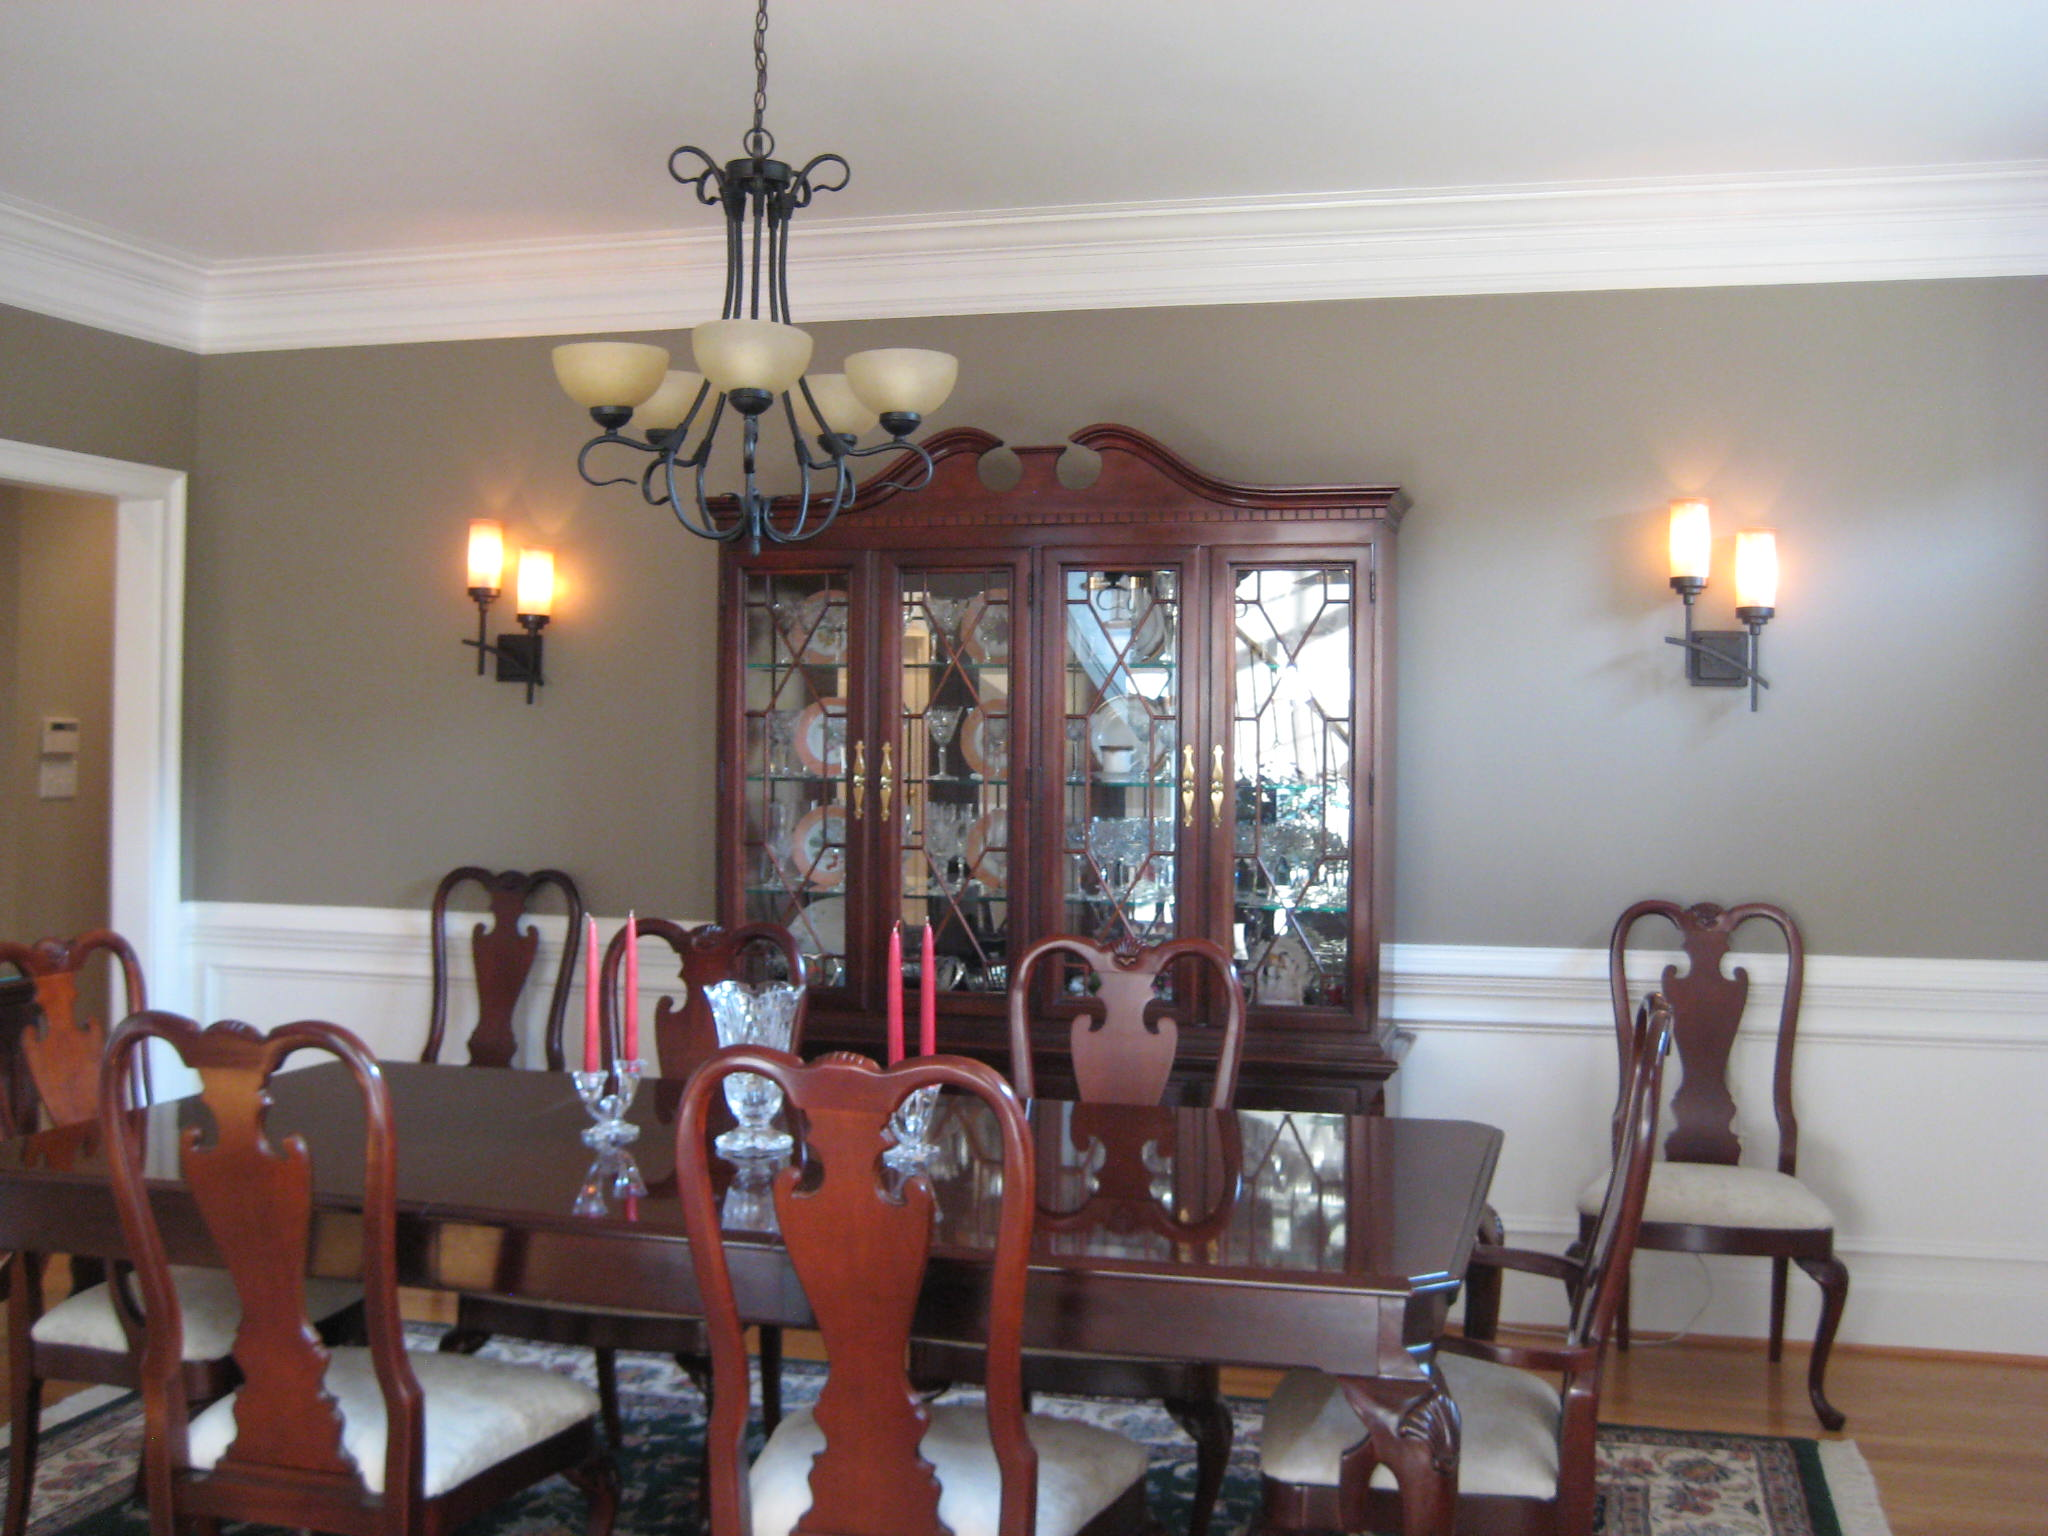 Dining Room adding light sconces and upholstered seats and more.